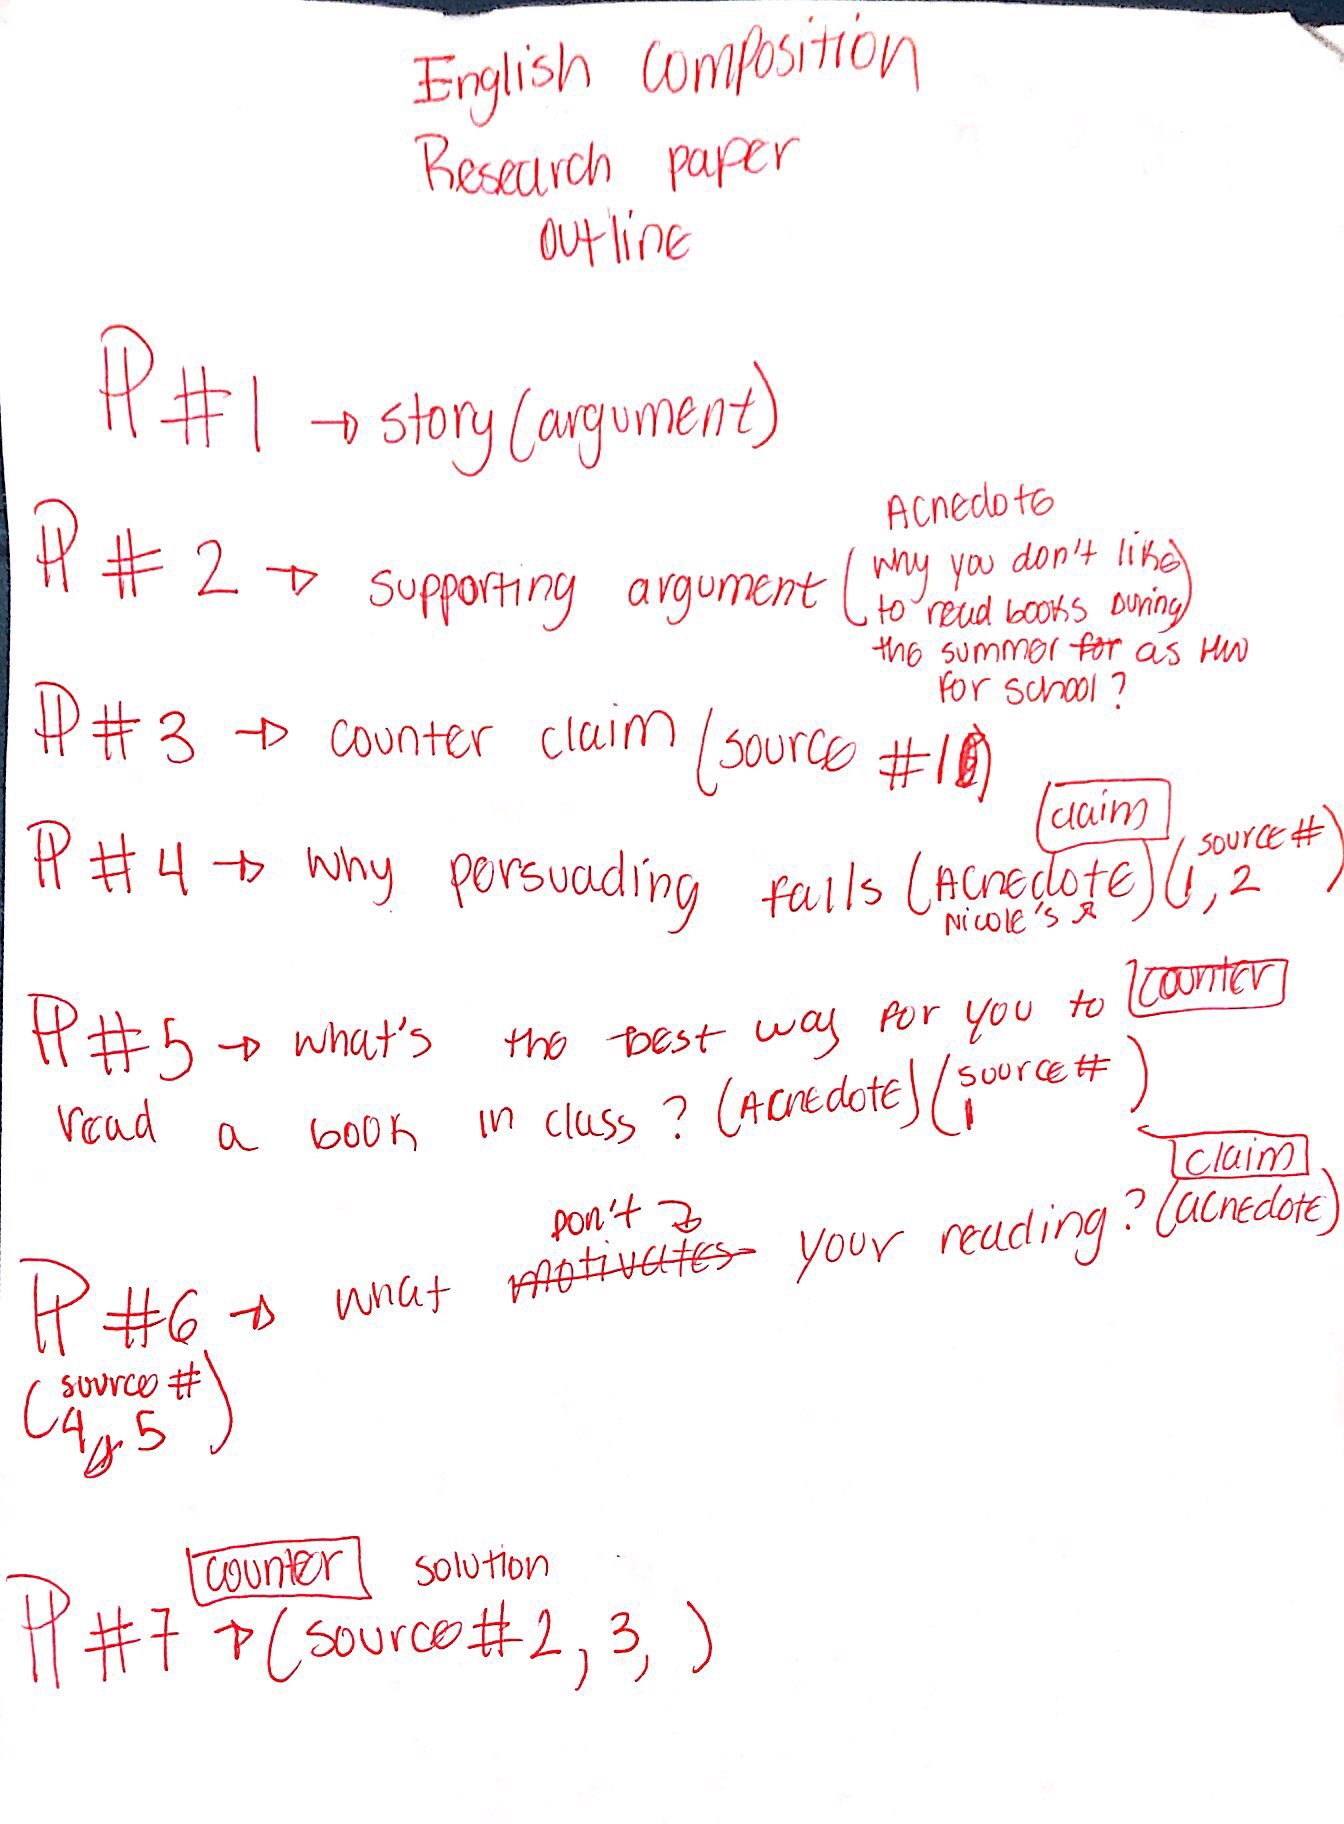 Epic Research Paper Outline With Counter Argument Sample